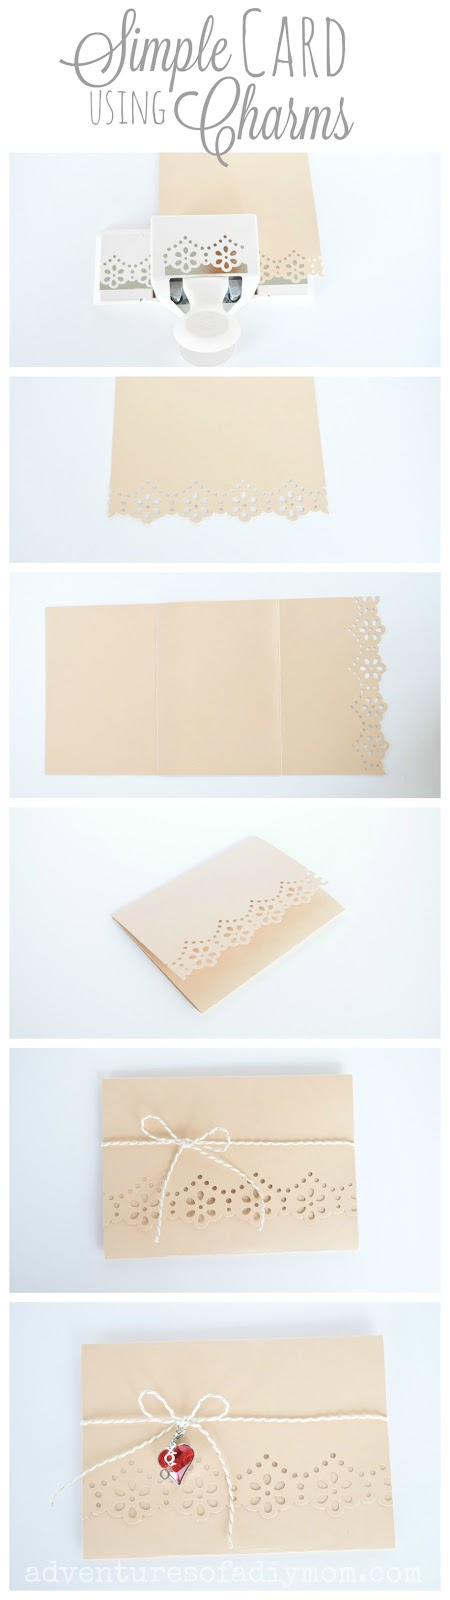 Simple Handmade Card